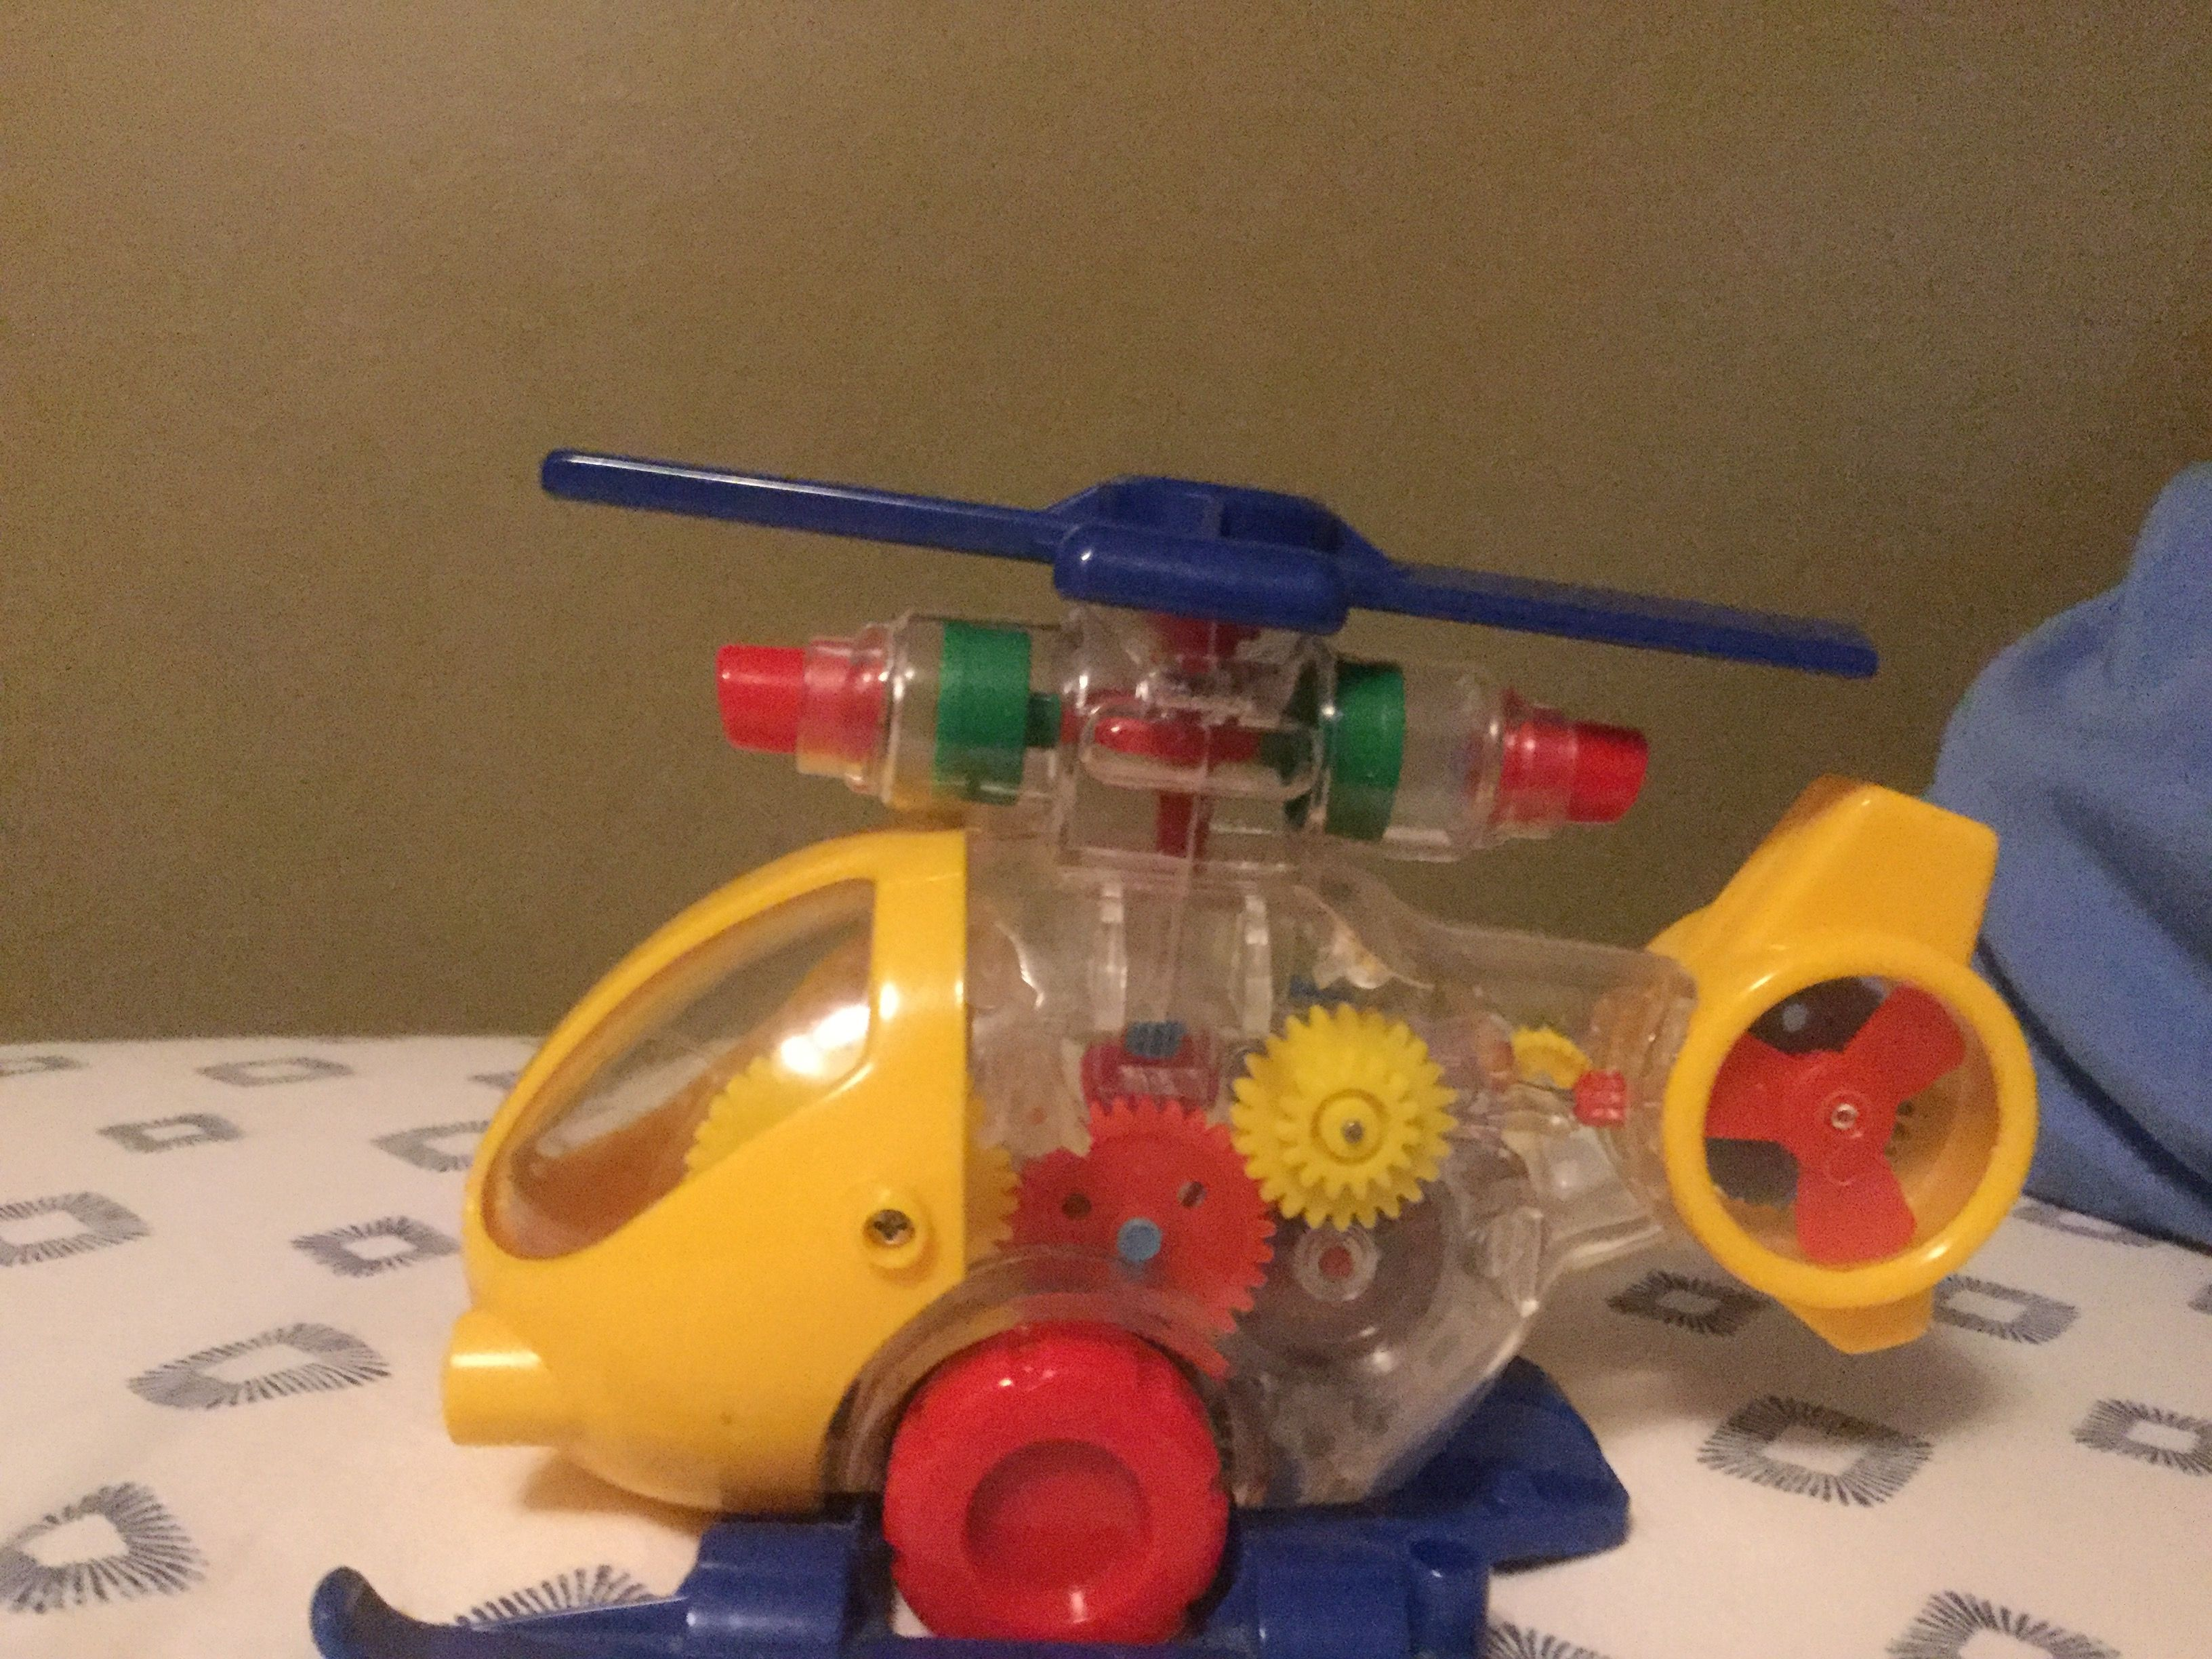 Sight N Sound Helicopter By Elc Seen In Baby Mozart Baby Mozart